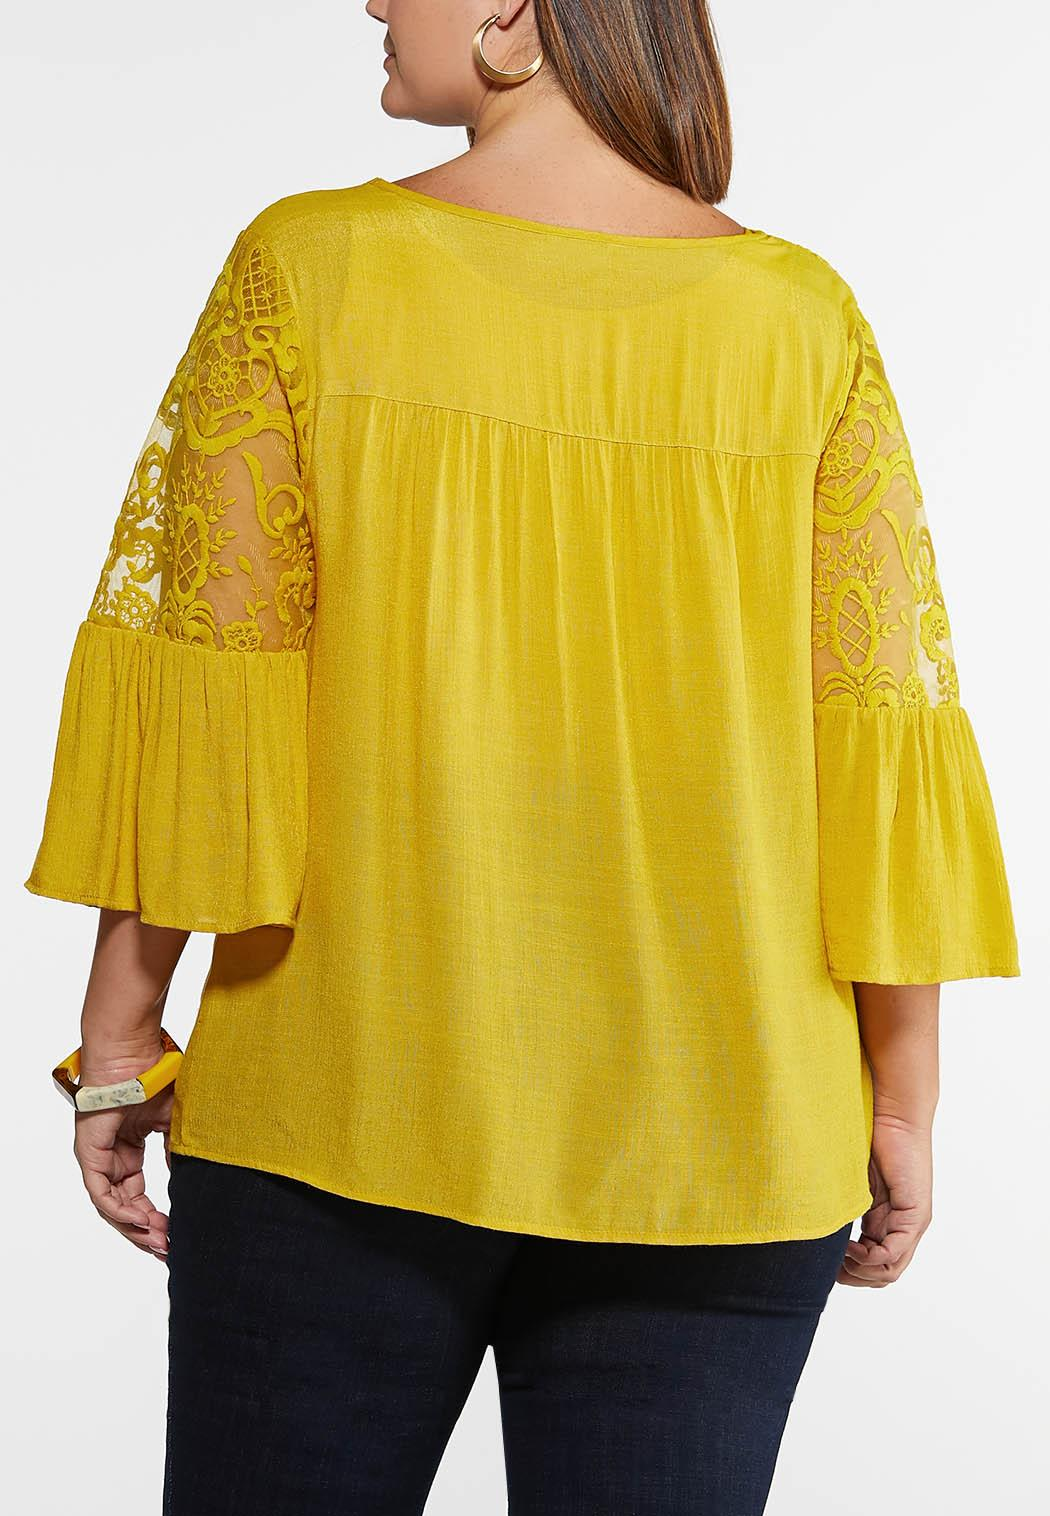 Plus Size Mesh Embroidered Poet Top (Item #43939750)